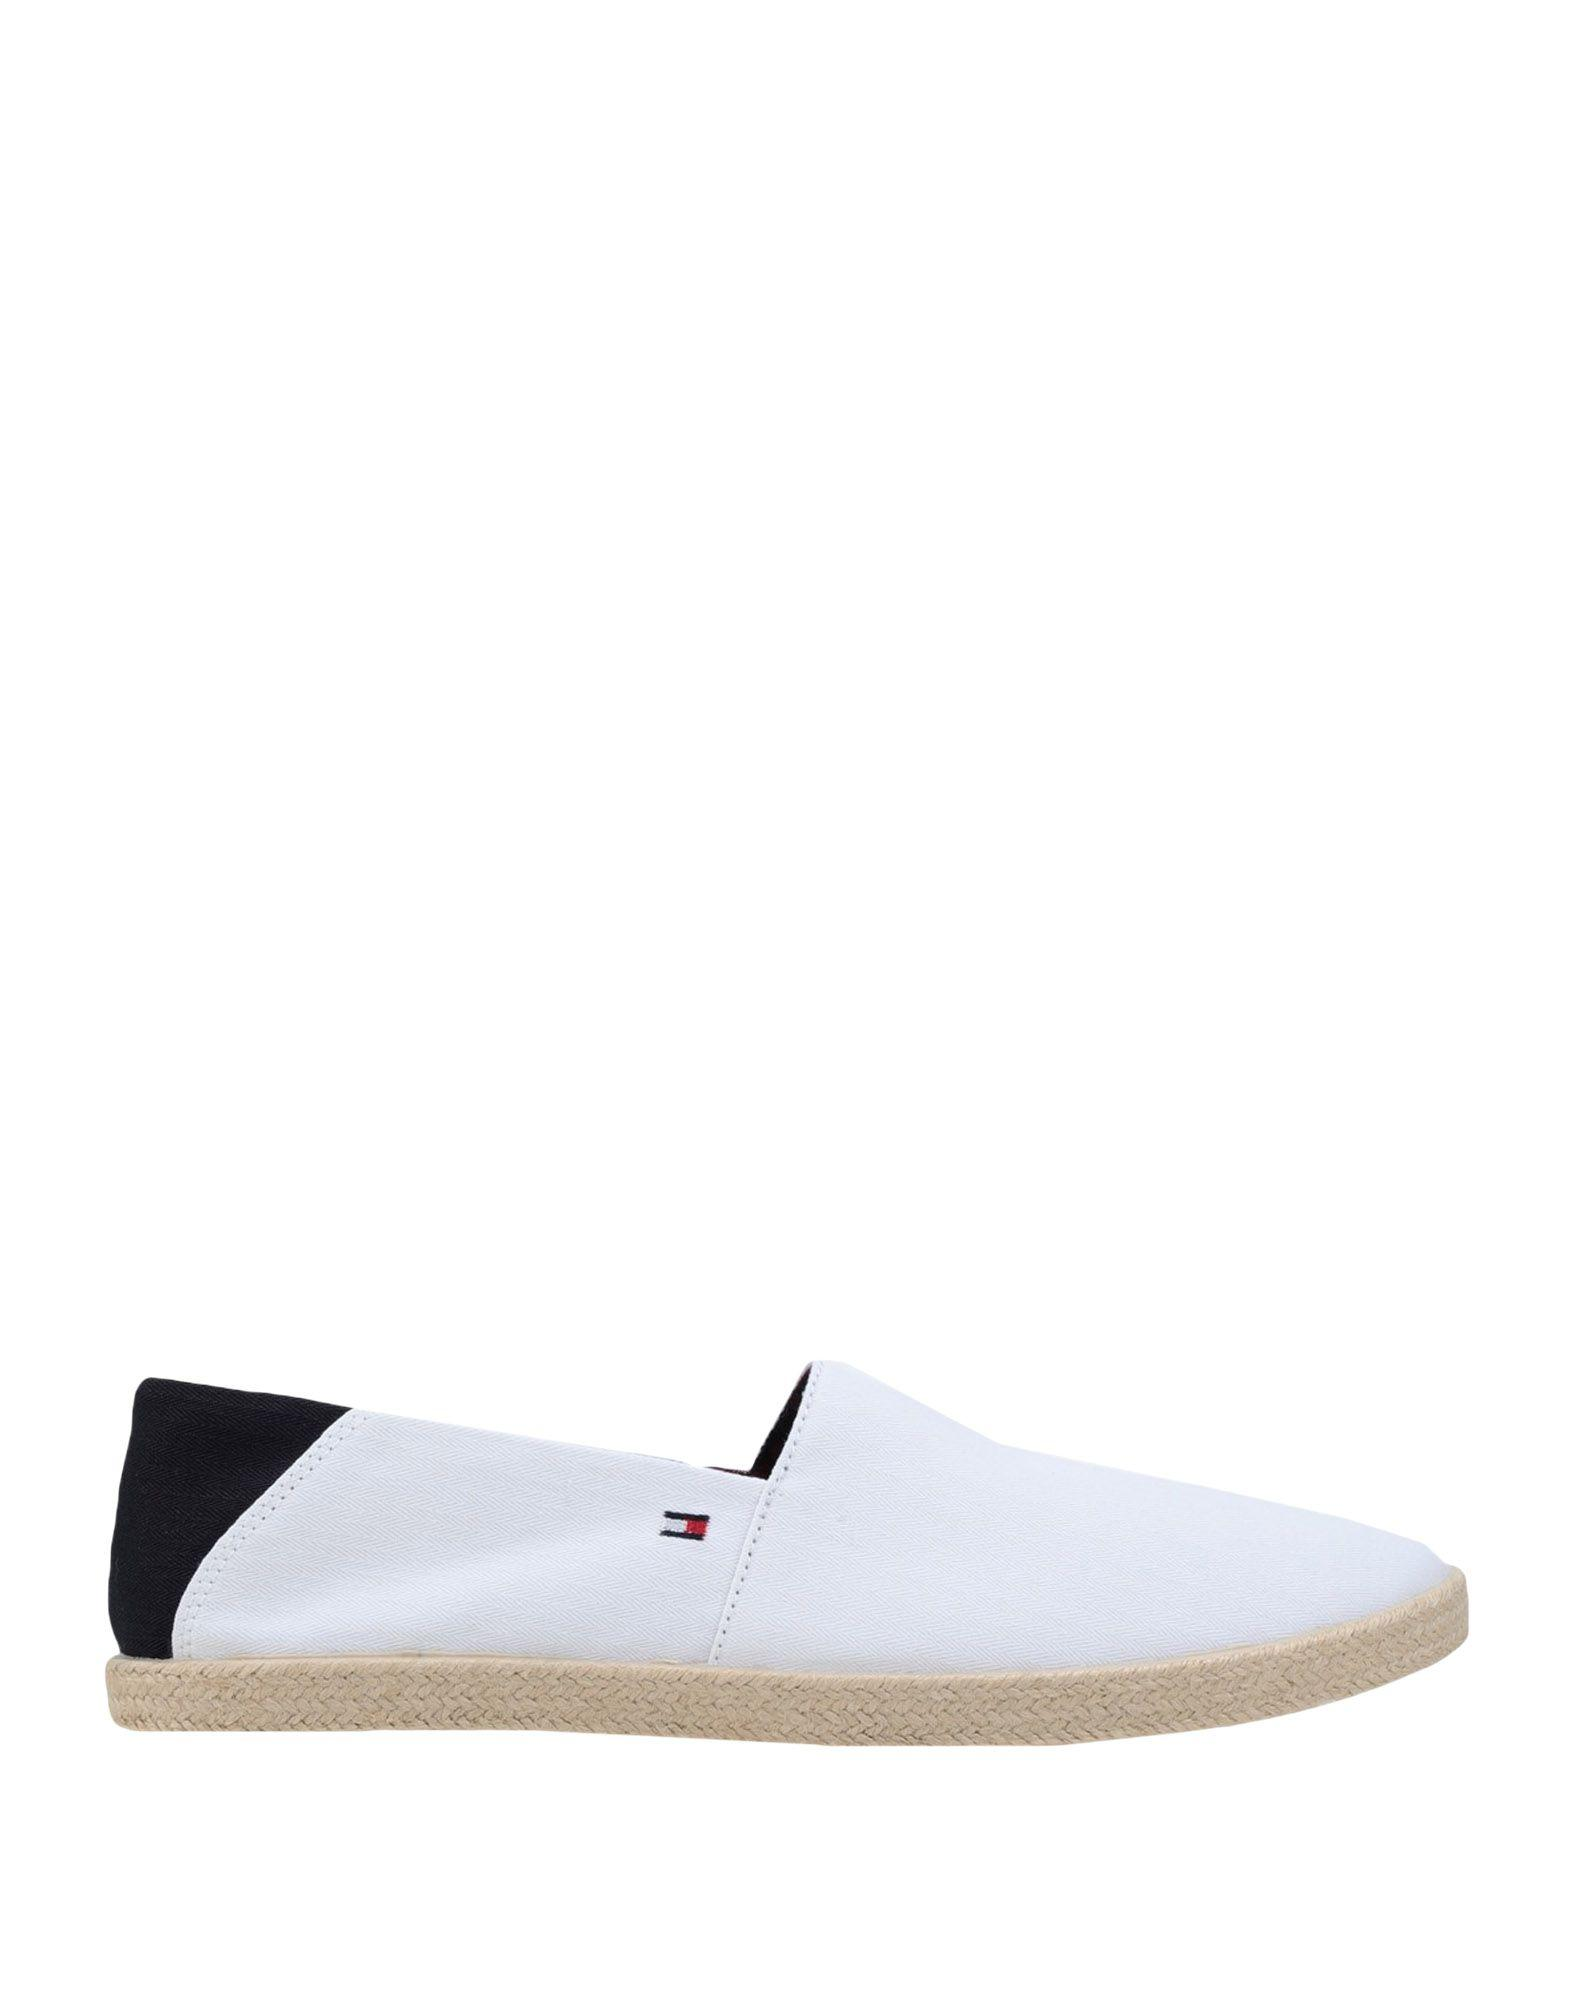 e158aec4be1c Lyst - Tommy Hilfiger Espadrilles in White for Men